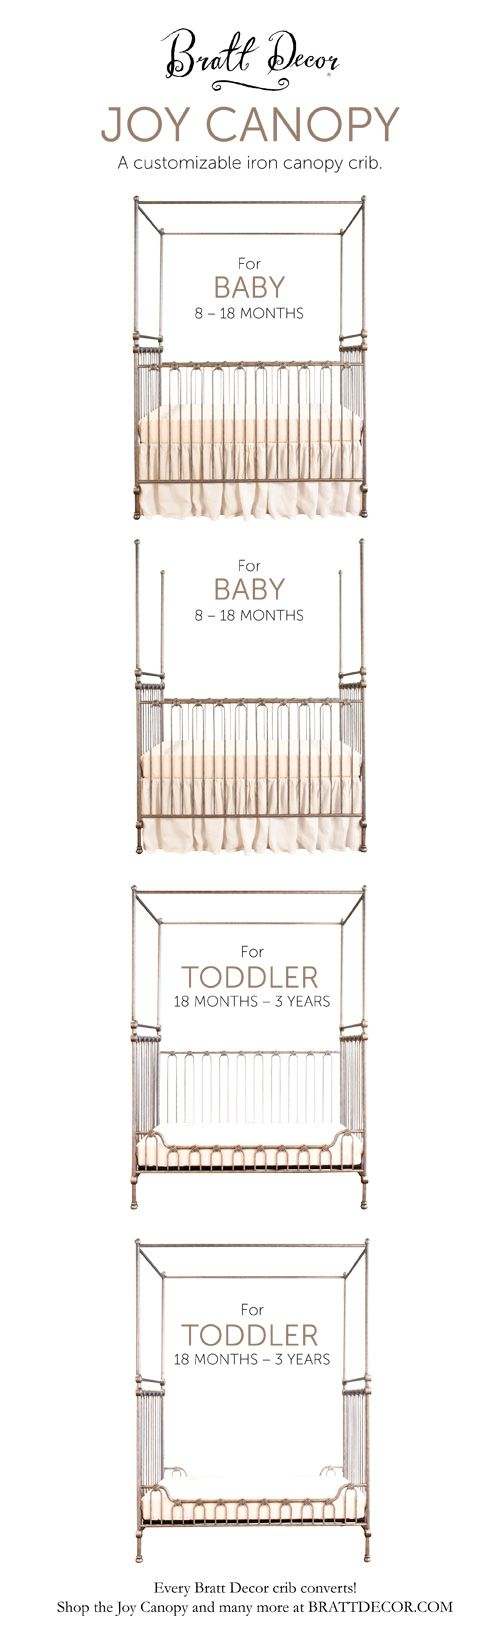 Crib for sale sheffield - Joy Canopy Crib Converts From A Baby Crib To A Toddler Bed Convertible